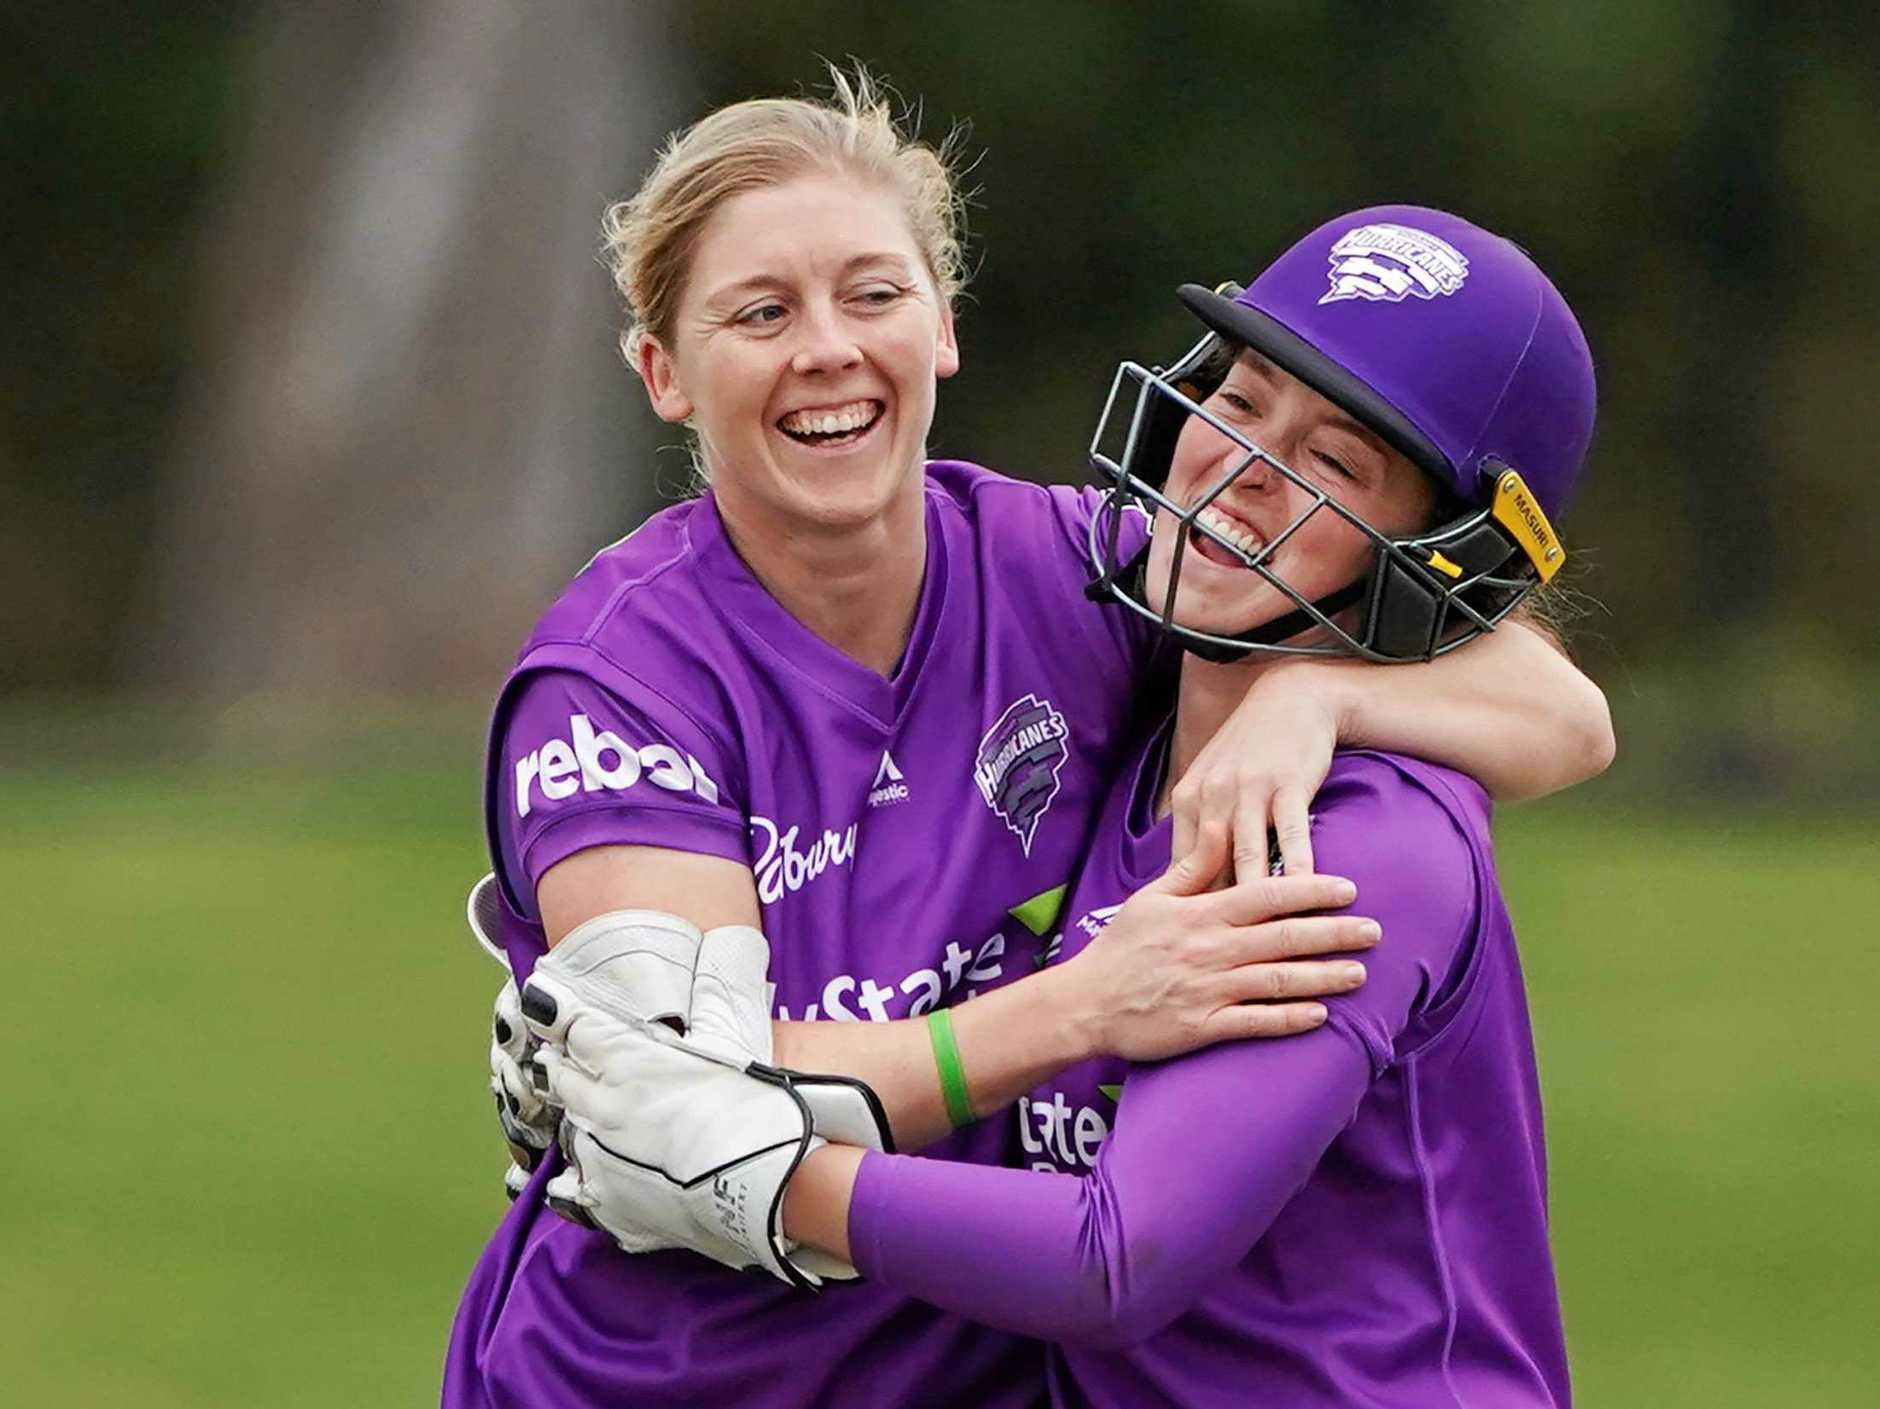 The Hurricanes' Heather Knight celebrates a wicket with Emily Smith at the Junction Oval, Melbourne on Sunday, October 20.  Picture: Michael Dodge/AAP